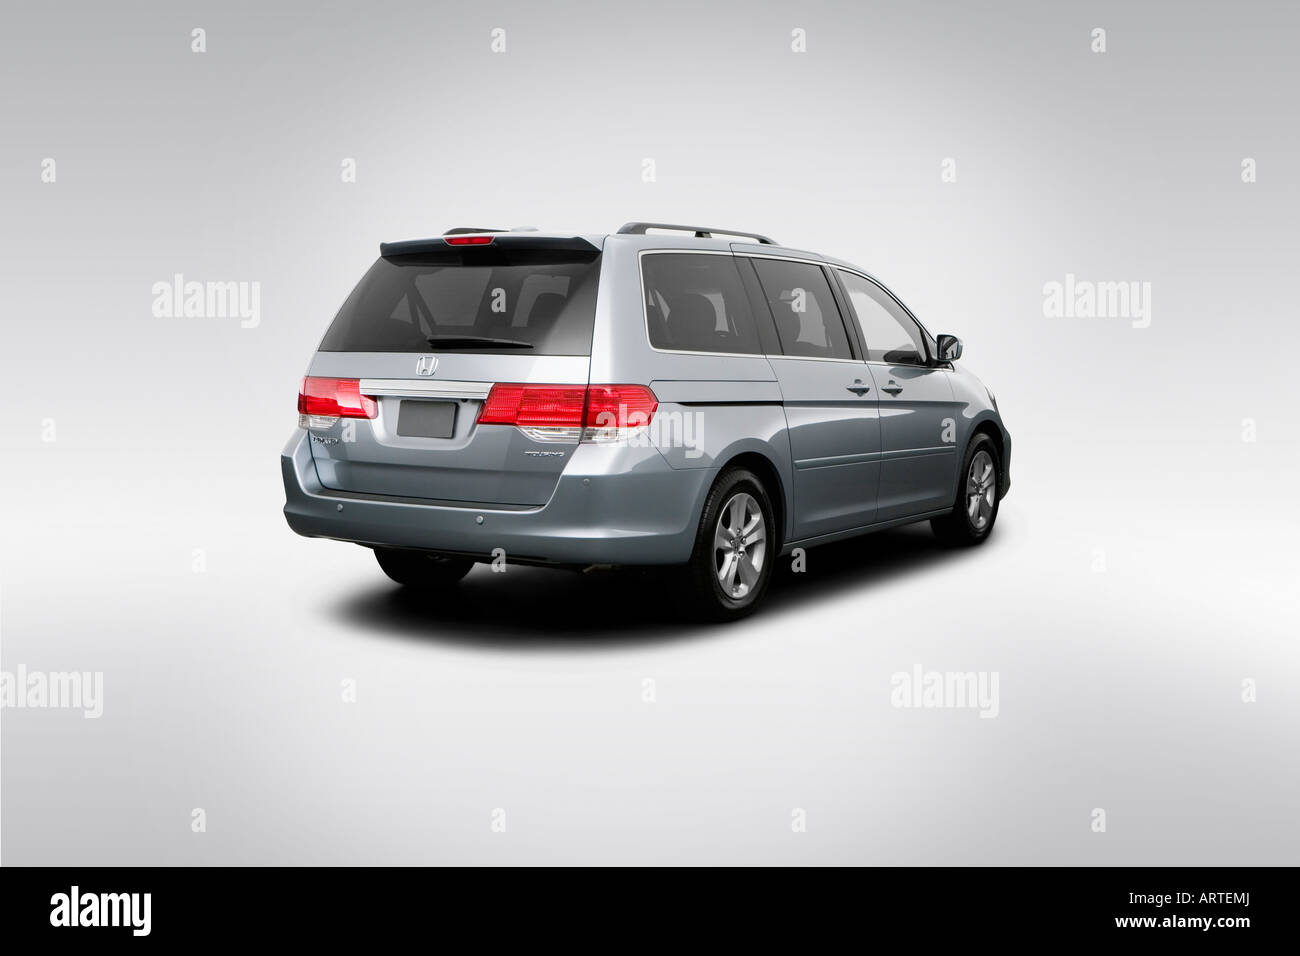 2008 Honda Odyssey Touring In Green   Rear Angle View   Stock Image